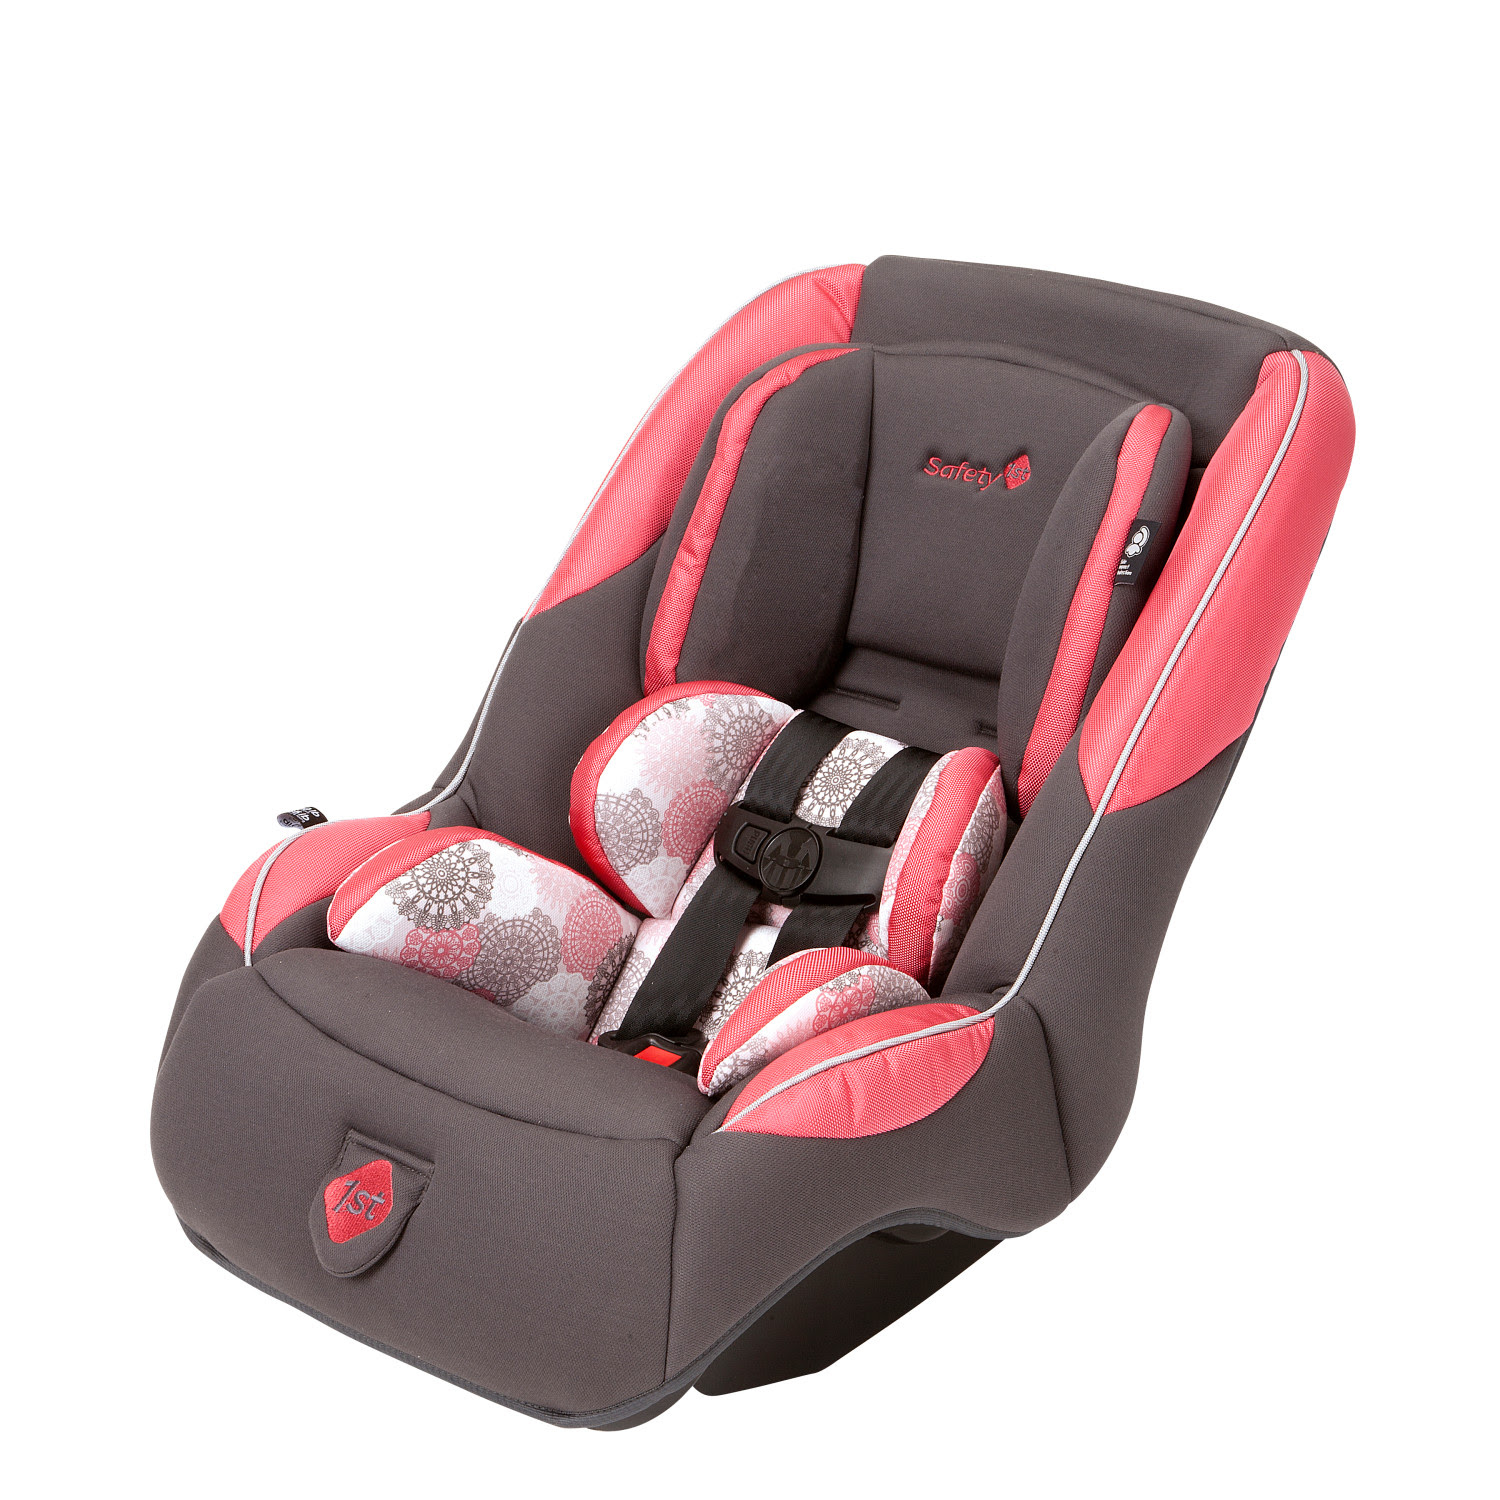 Safety 1st Guide 65 Convertible Car Seat  eBay